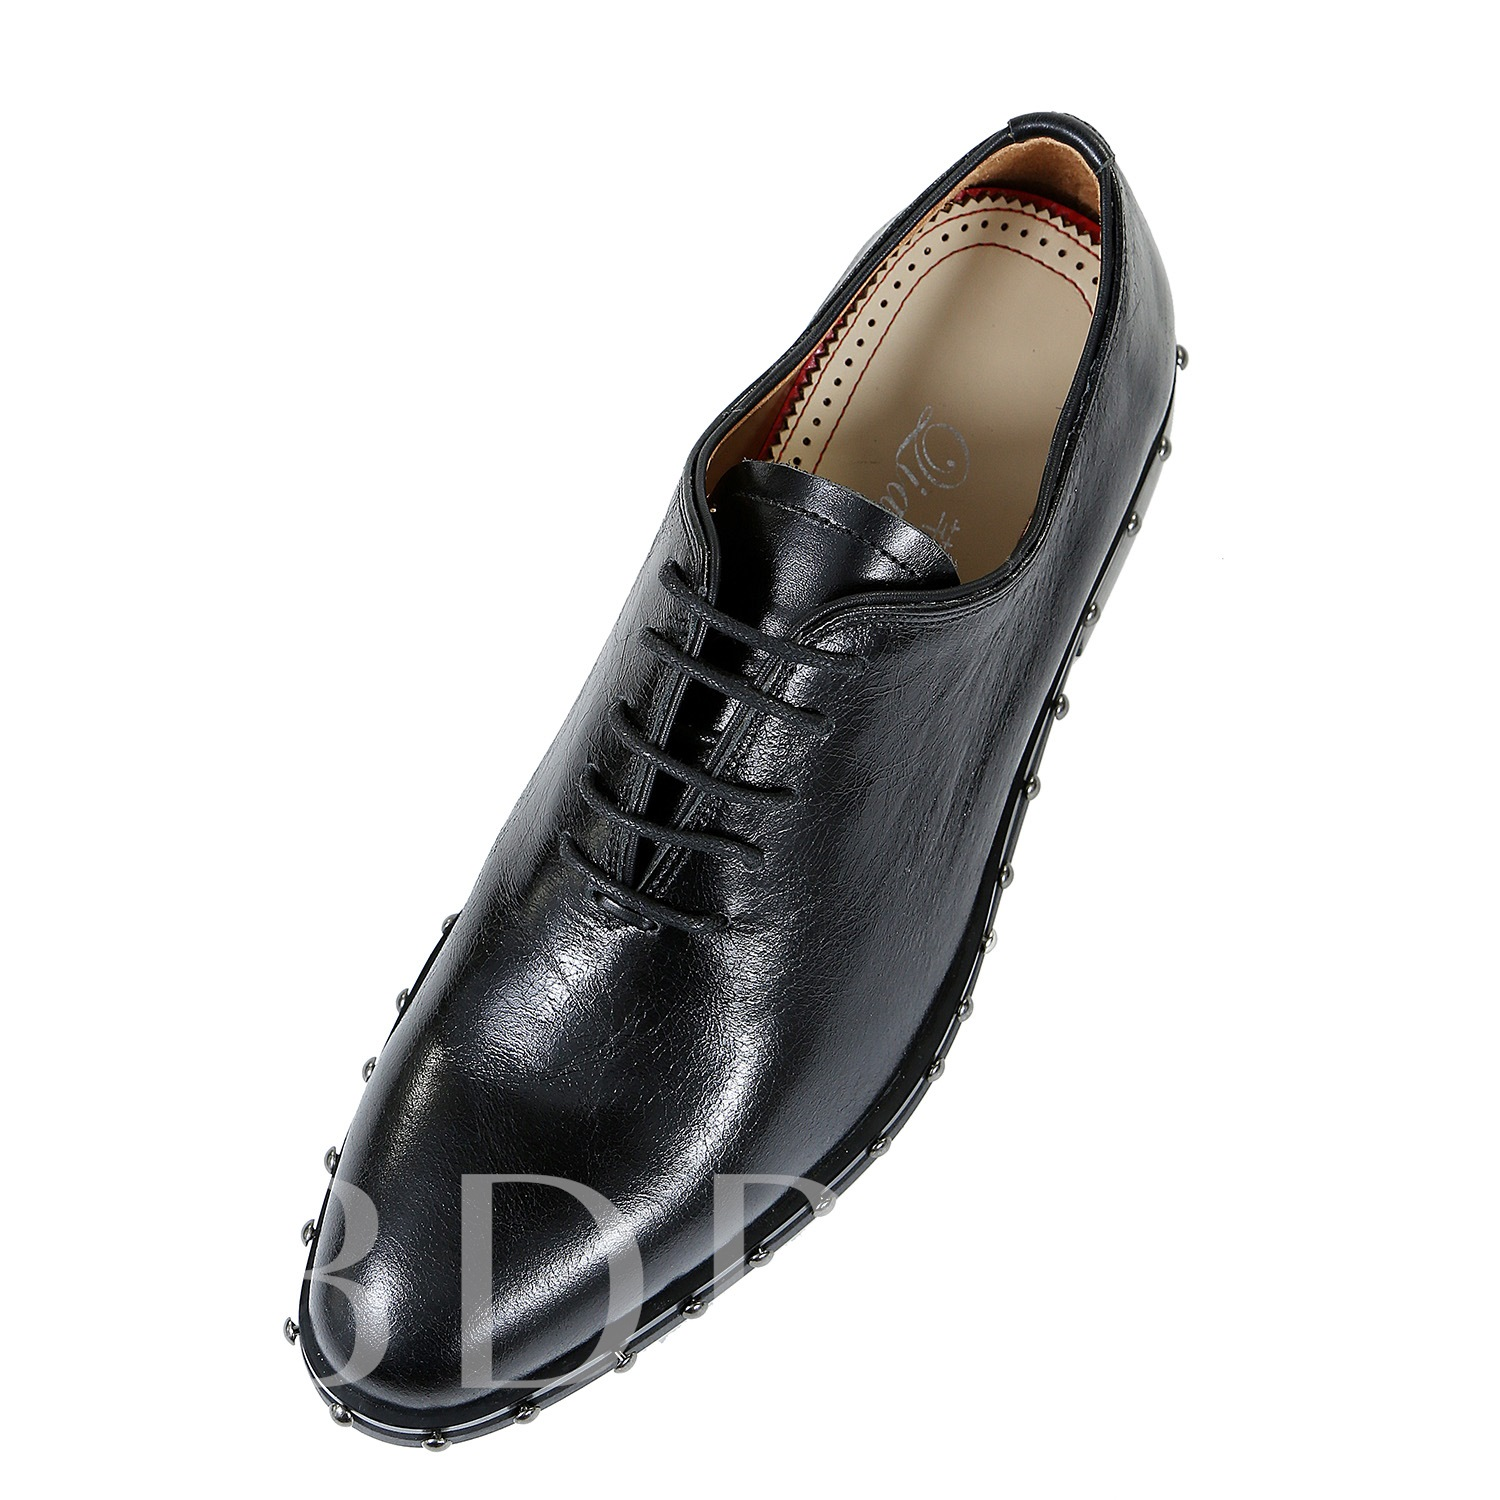 Black Leather Rivet Purfle Men's Dress Shoes Fashion Loafers